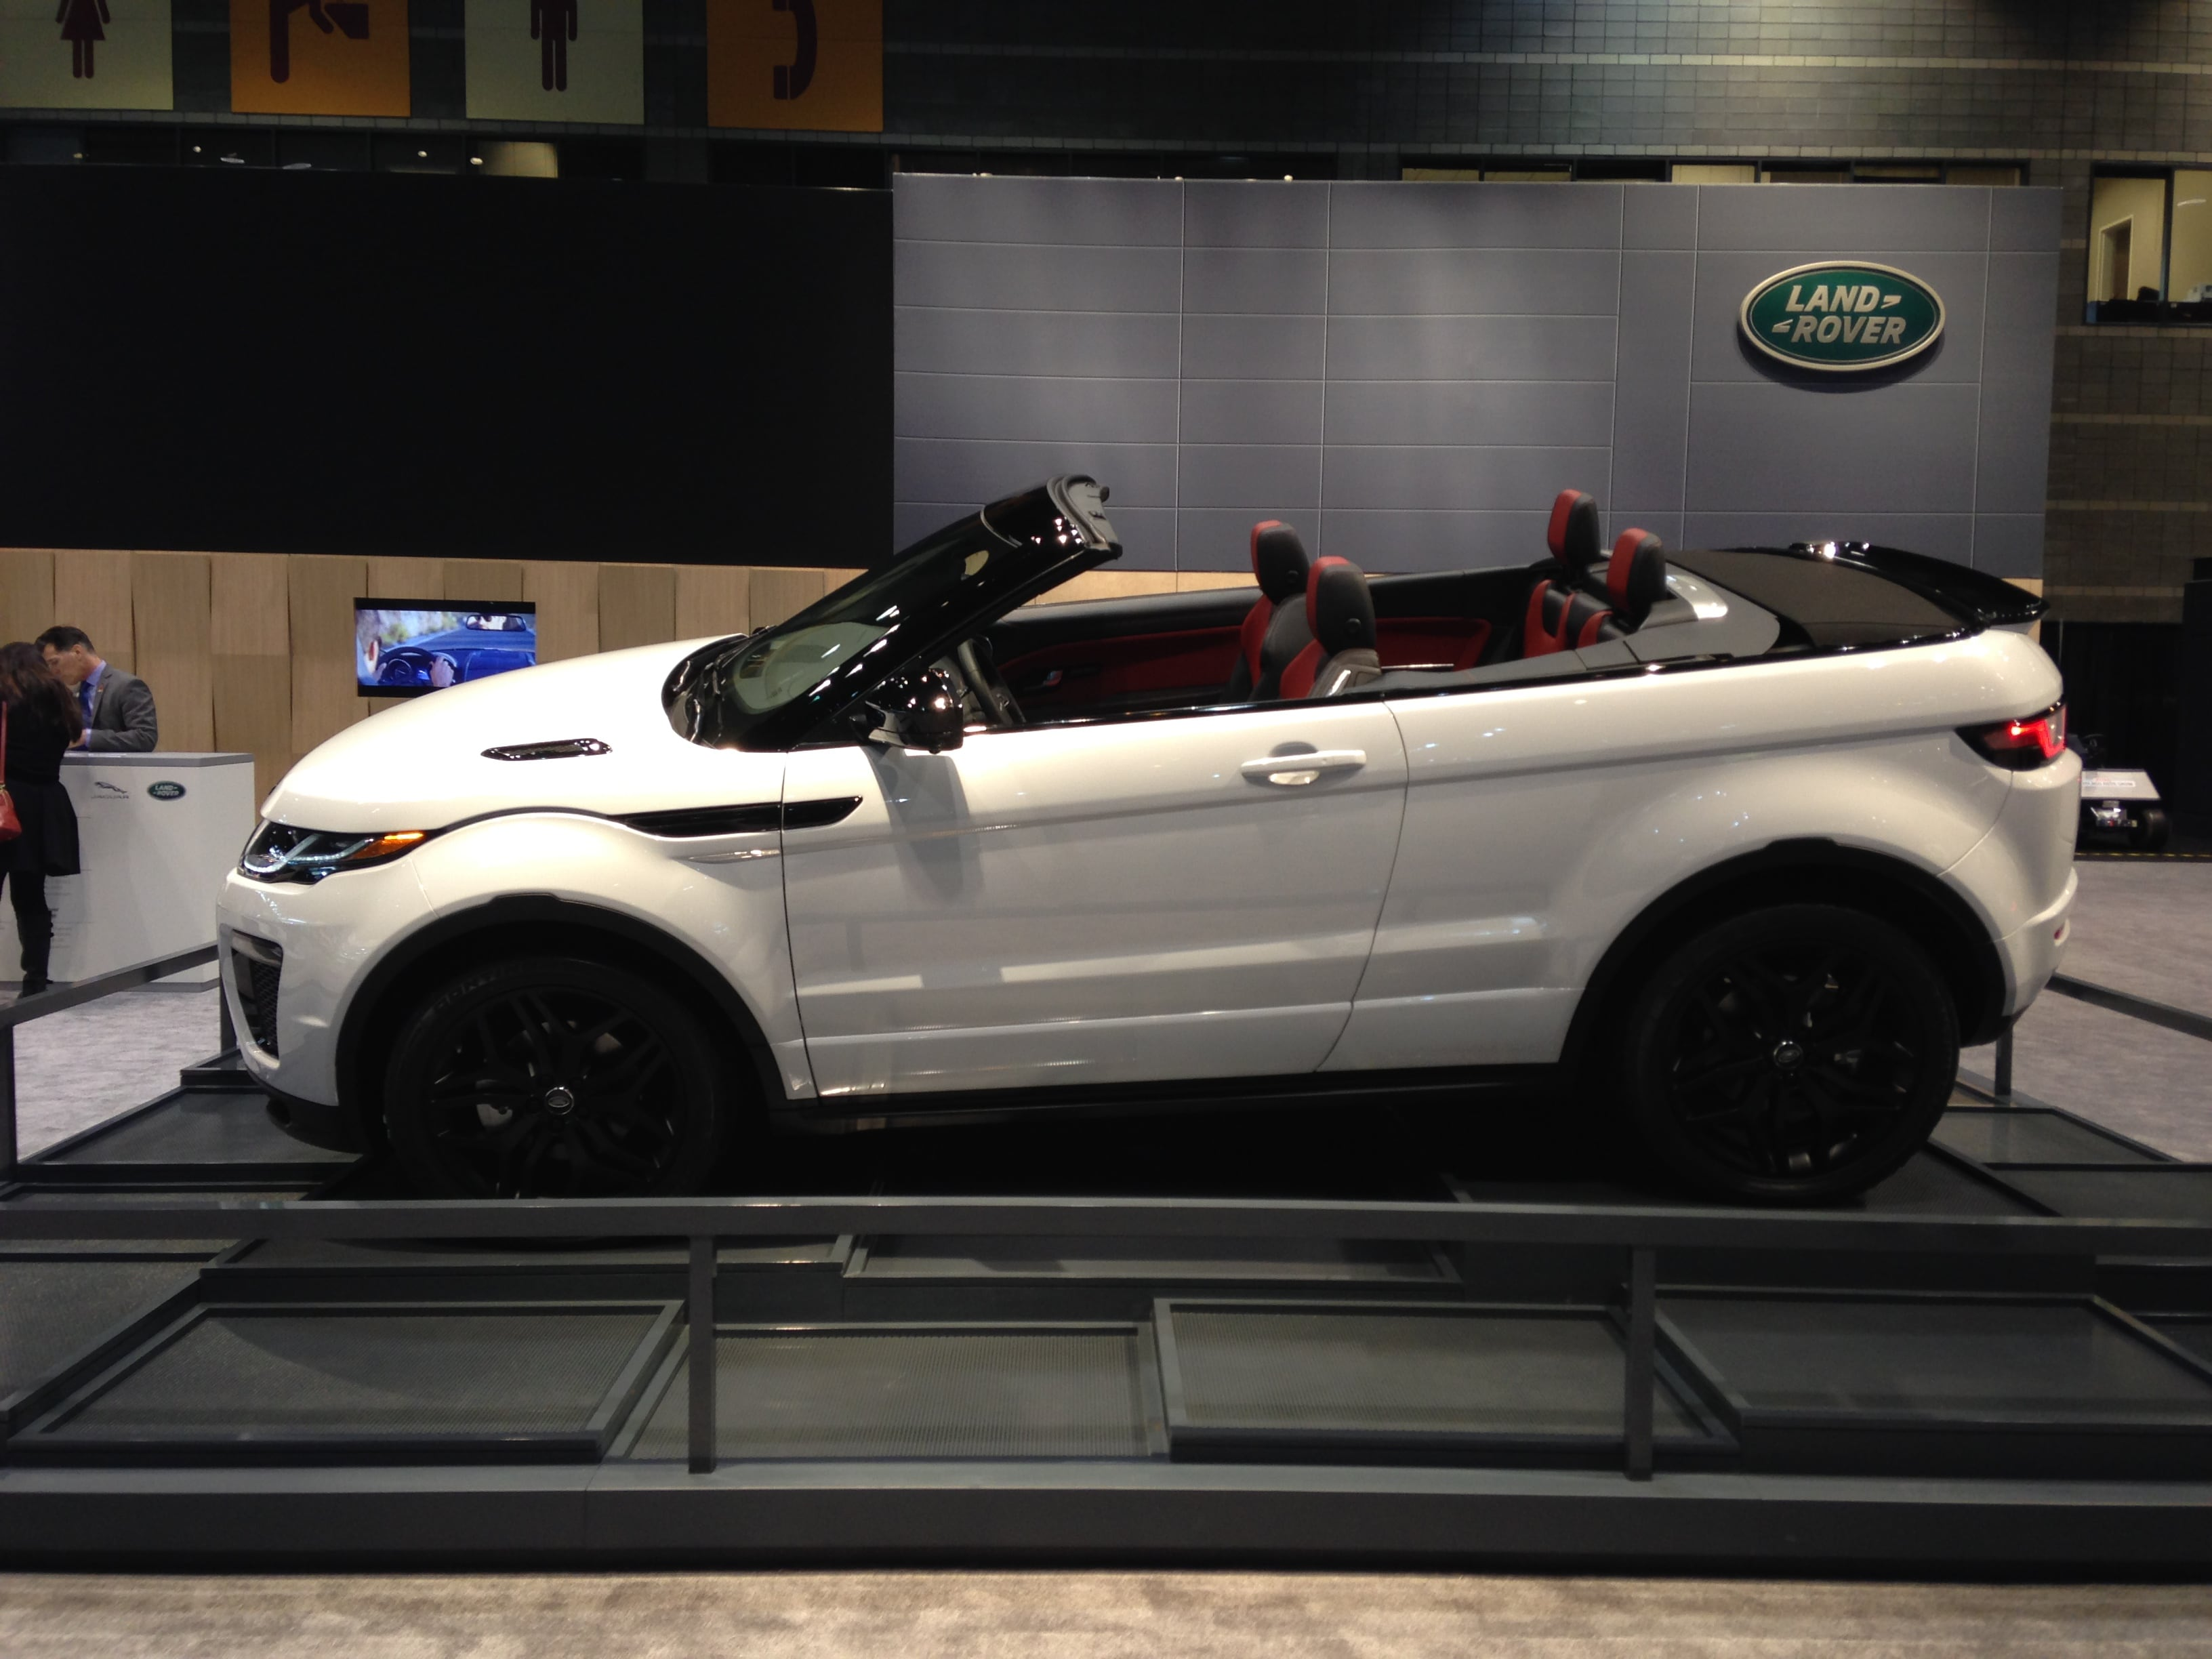 Land Rover Vehicles at the Chicago Auto Show